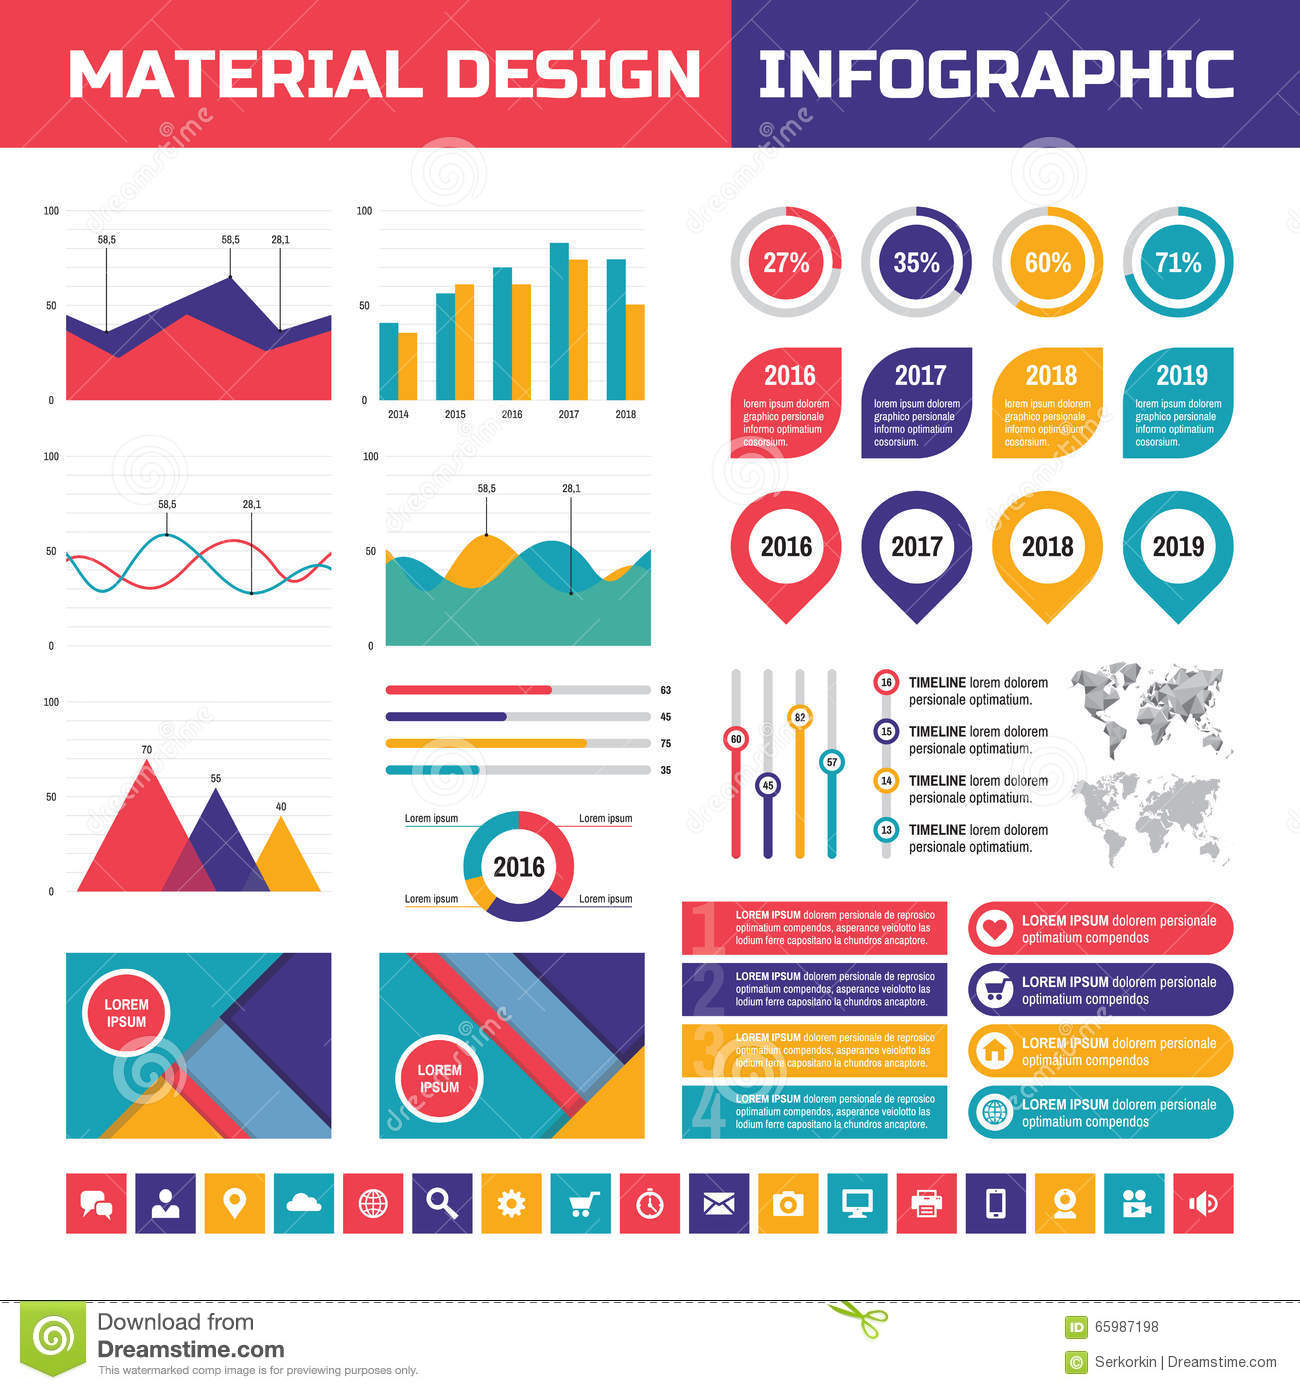 Design Style infographic business concept in flat design style - timeline